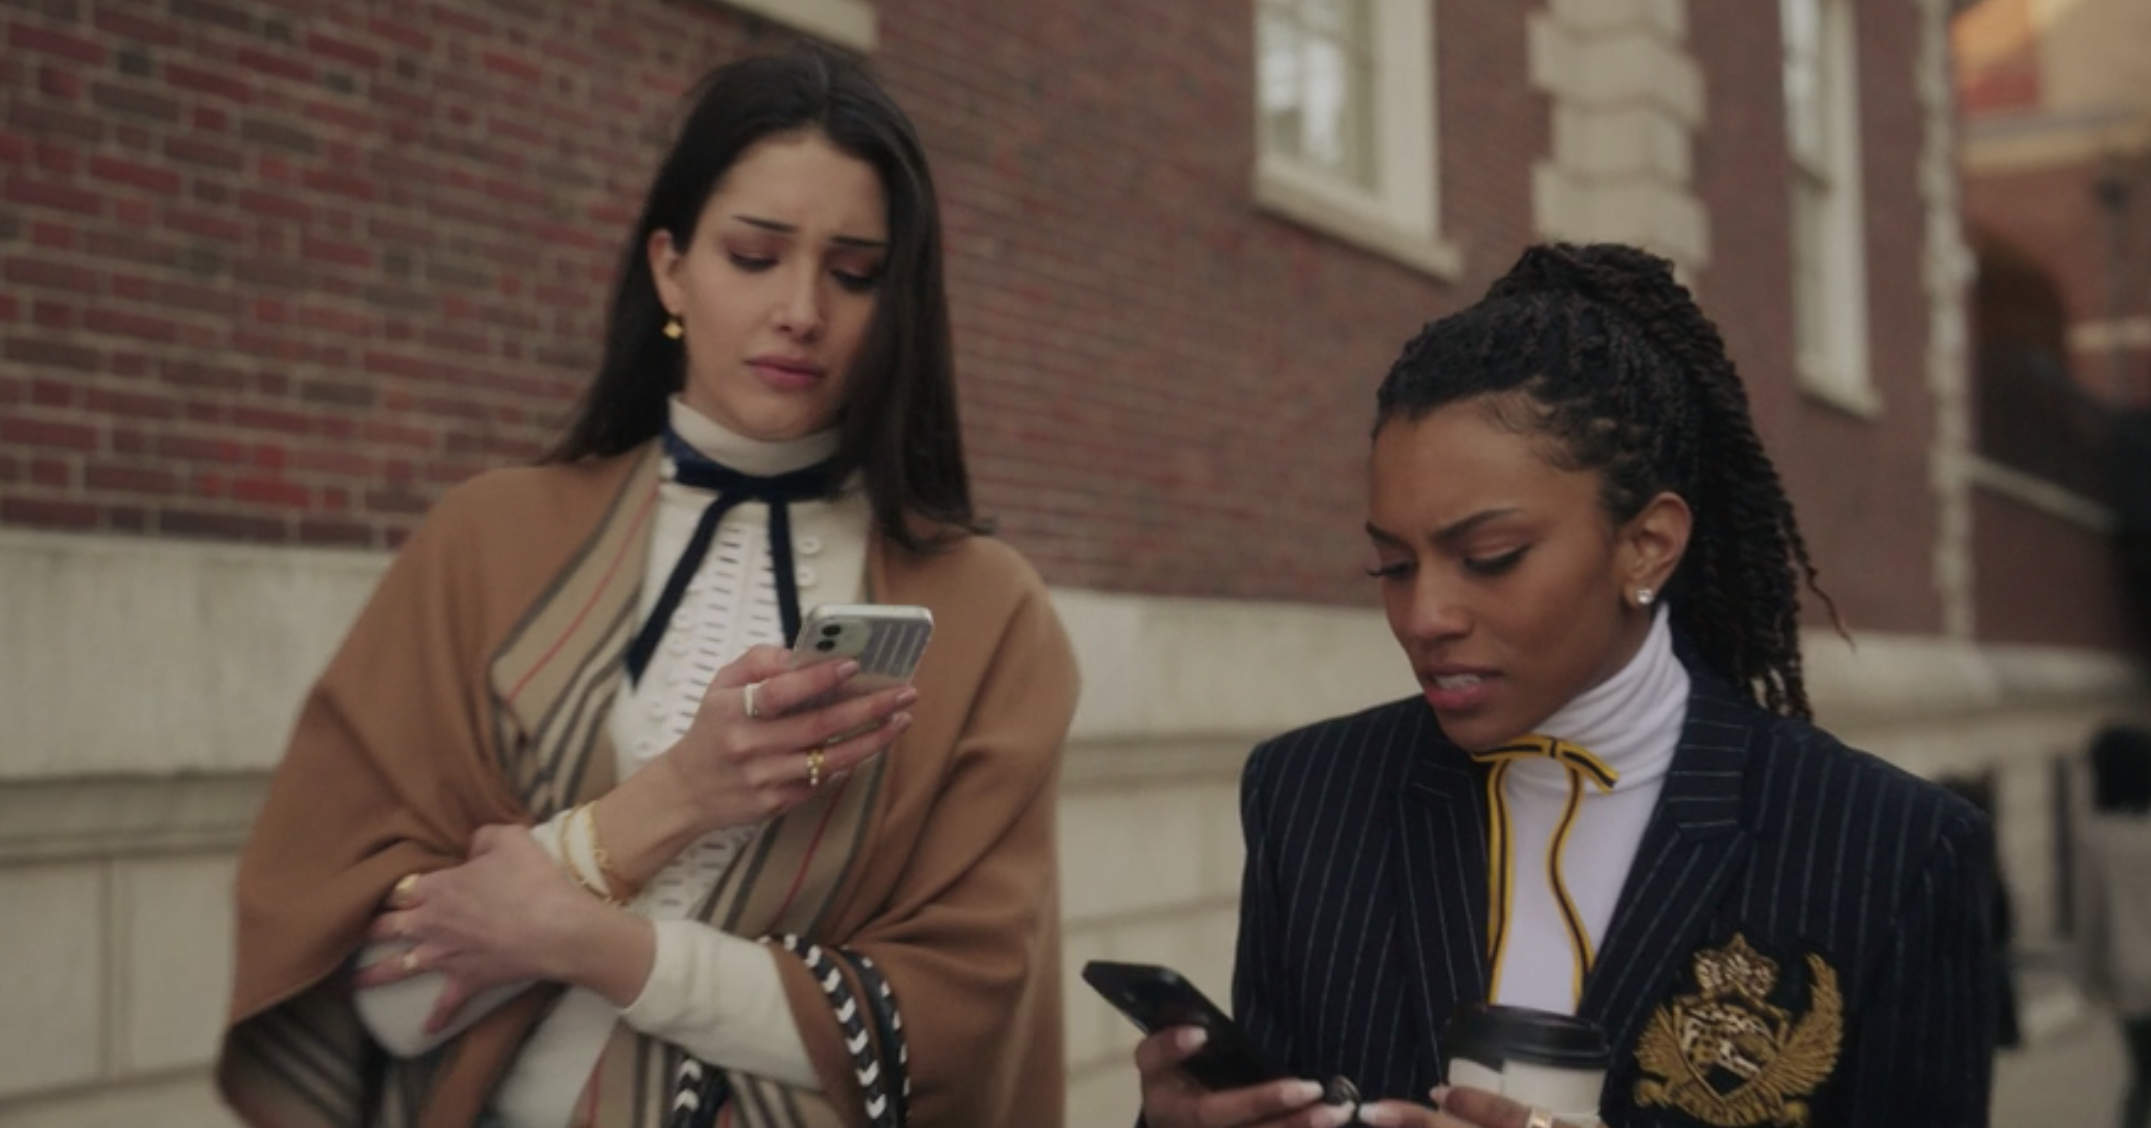 Luna wears a striped poncho over a ruffled shirt with a skinny bow tie, and Monet wears a pin-striped blazer over a turtleneck and a bright skinny bow tie